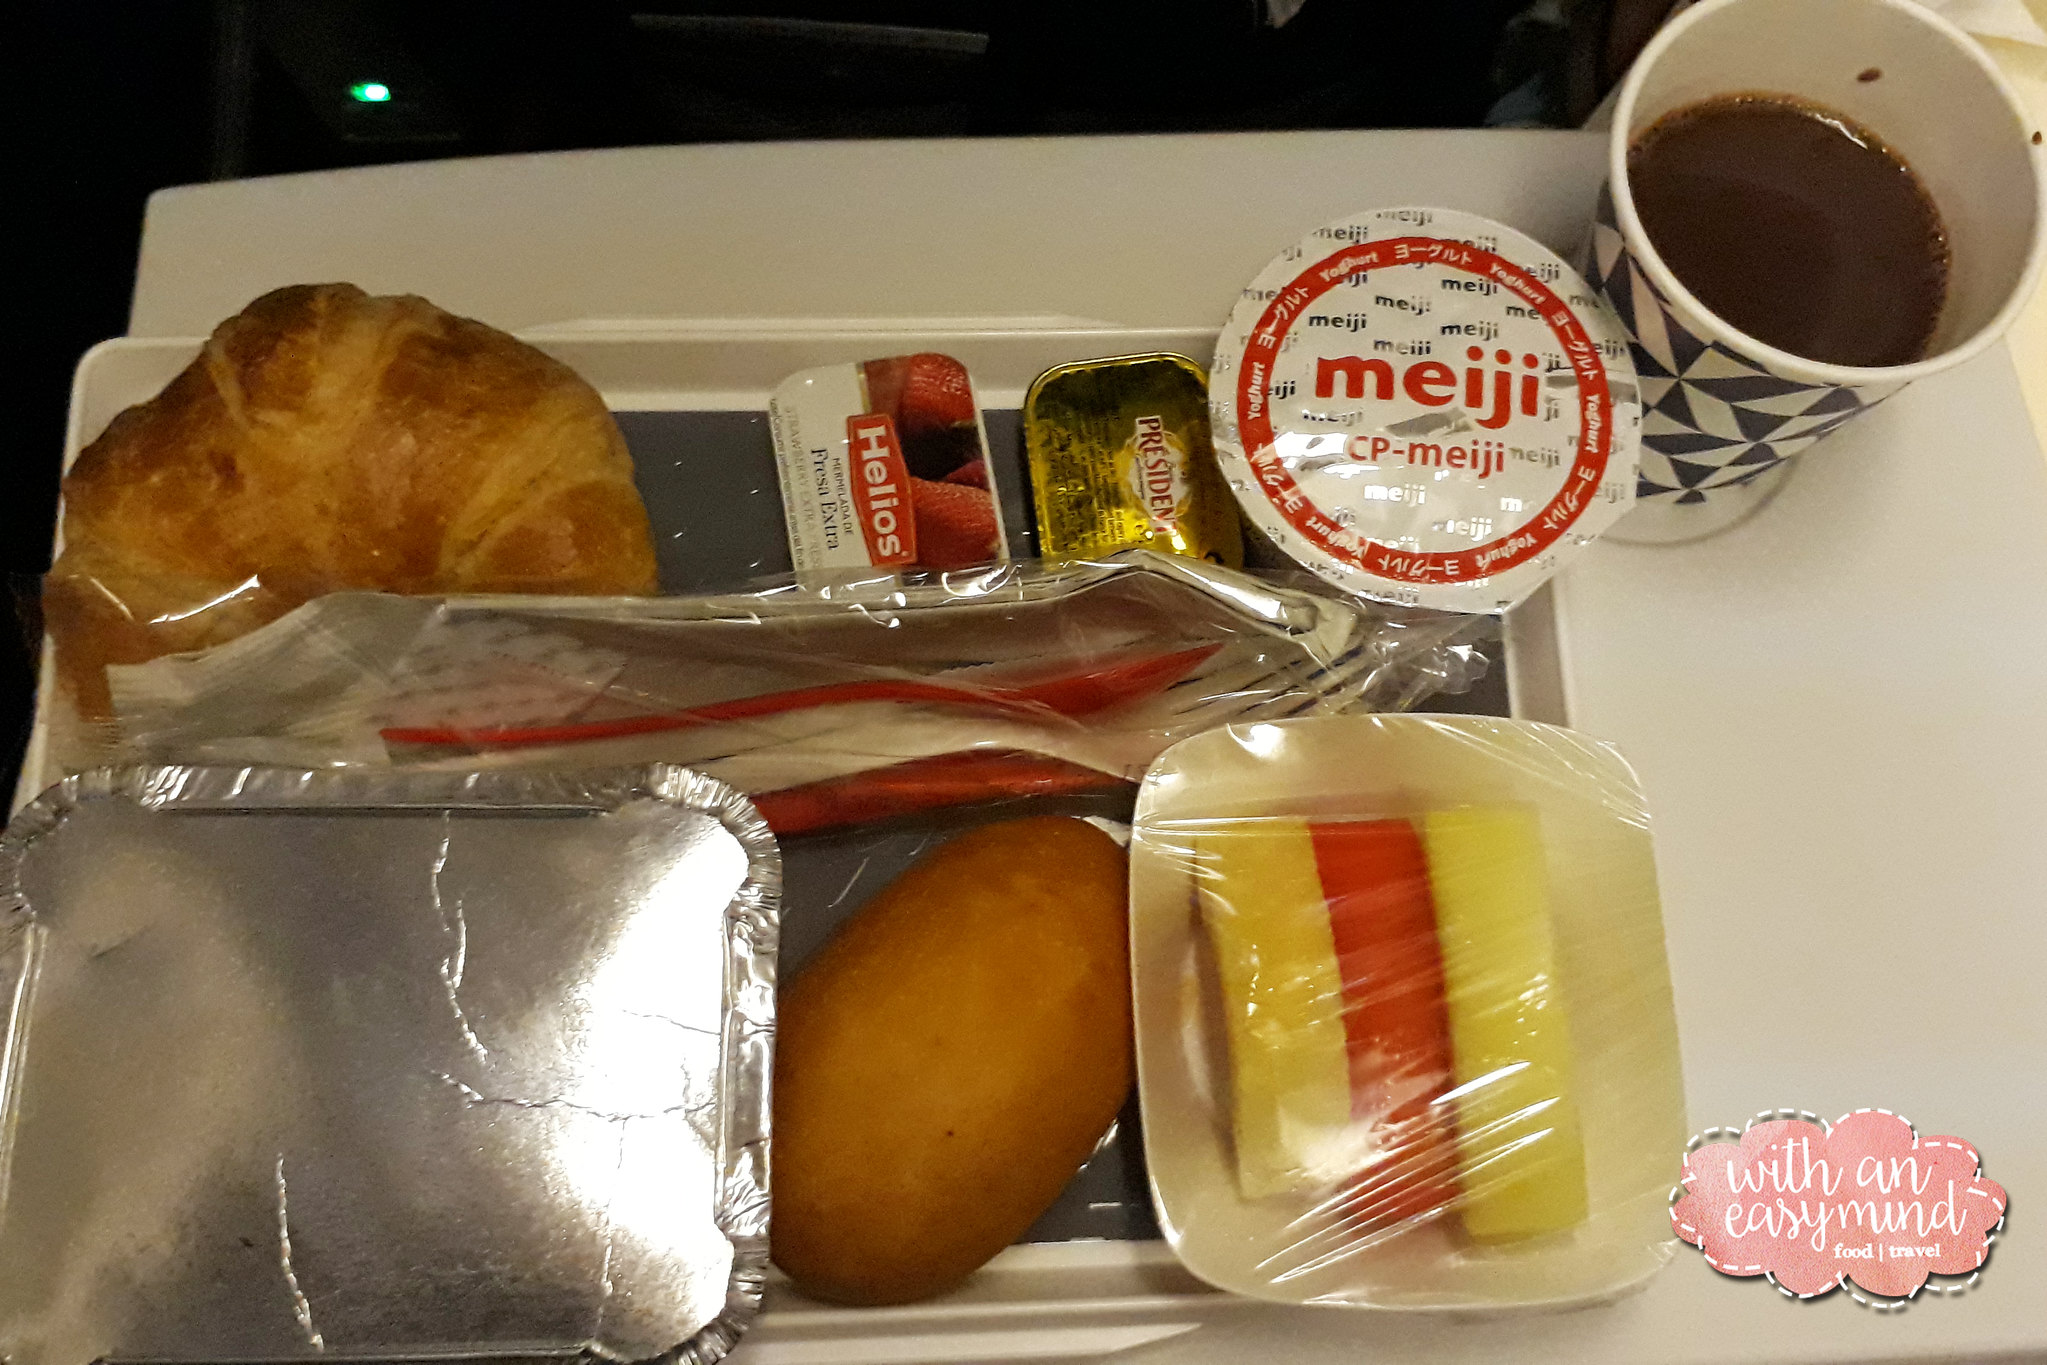 airfrance-meal-3